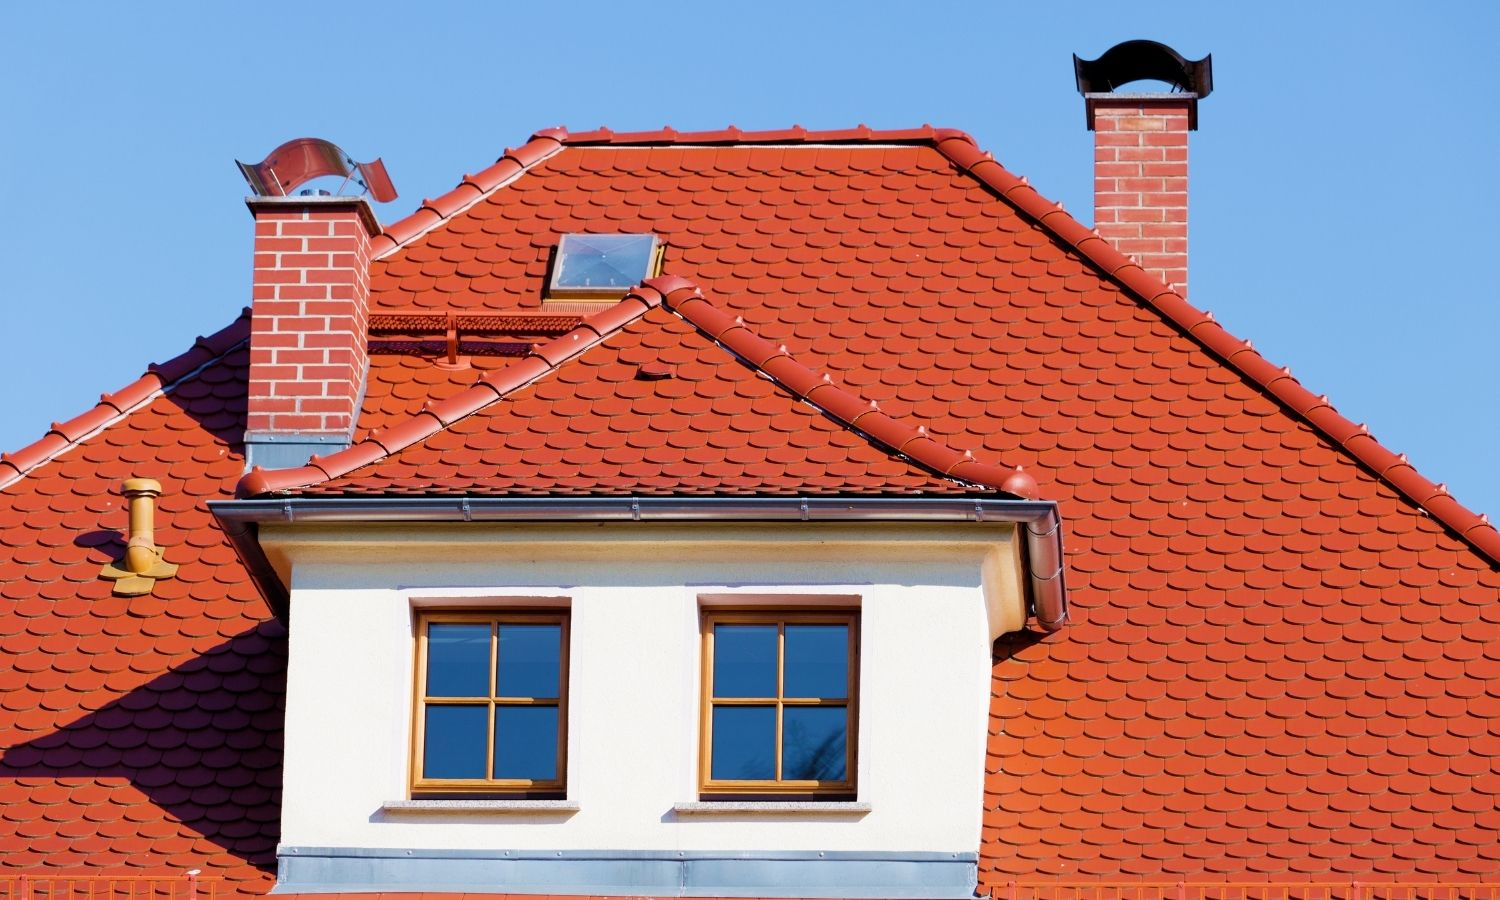 anchorage-roofing-1